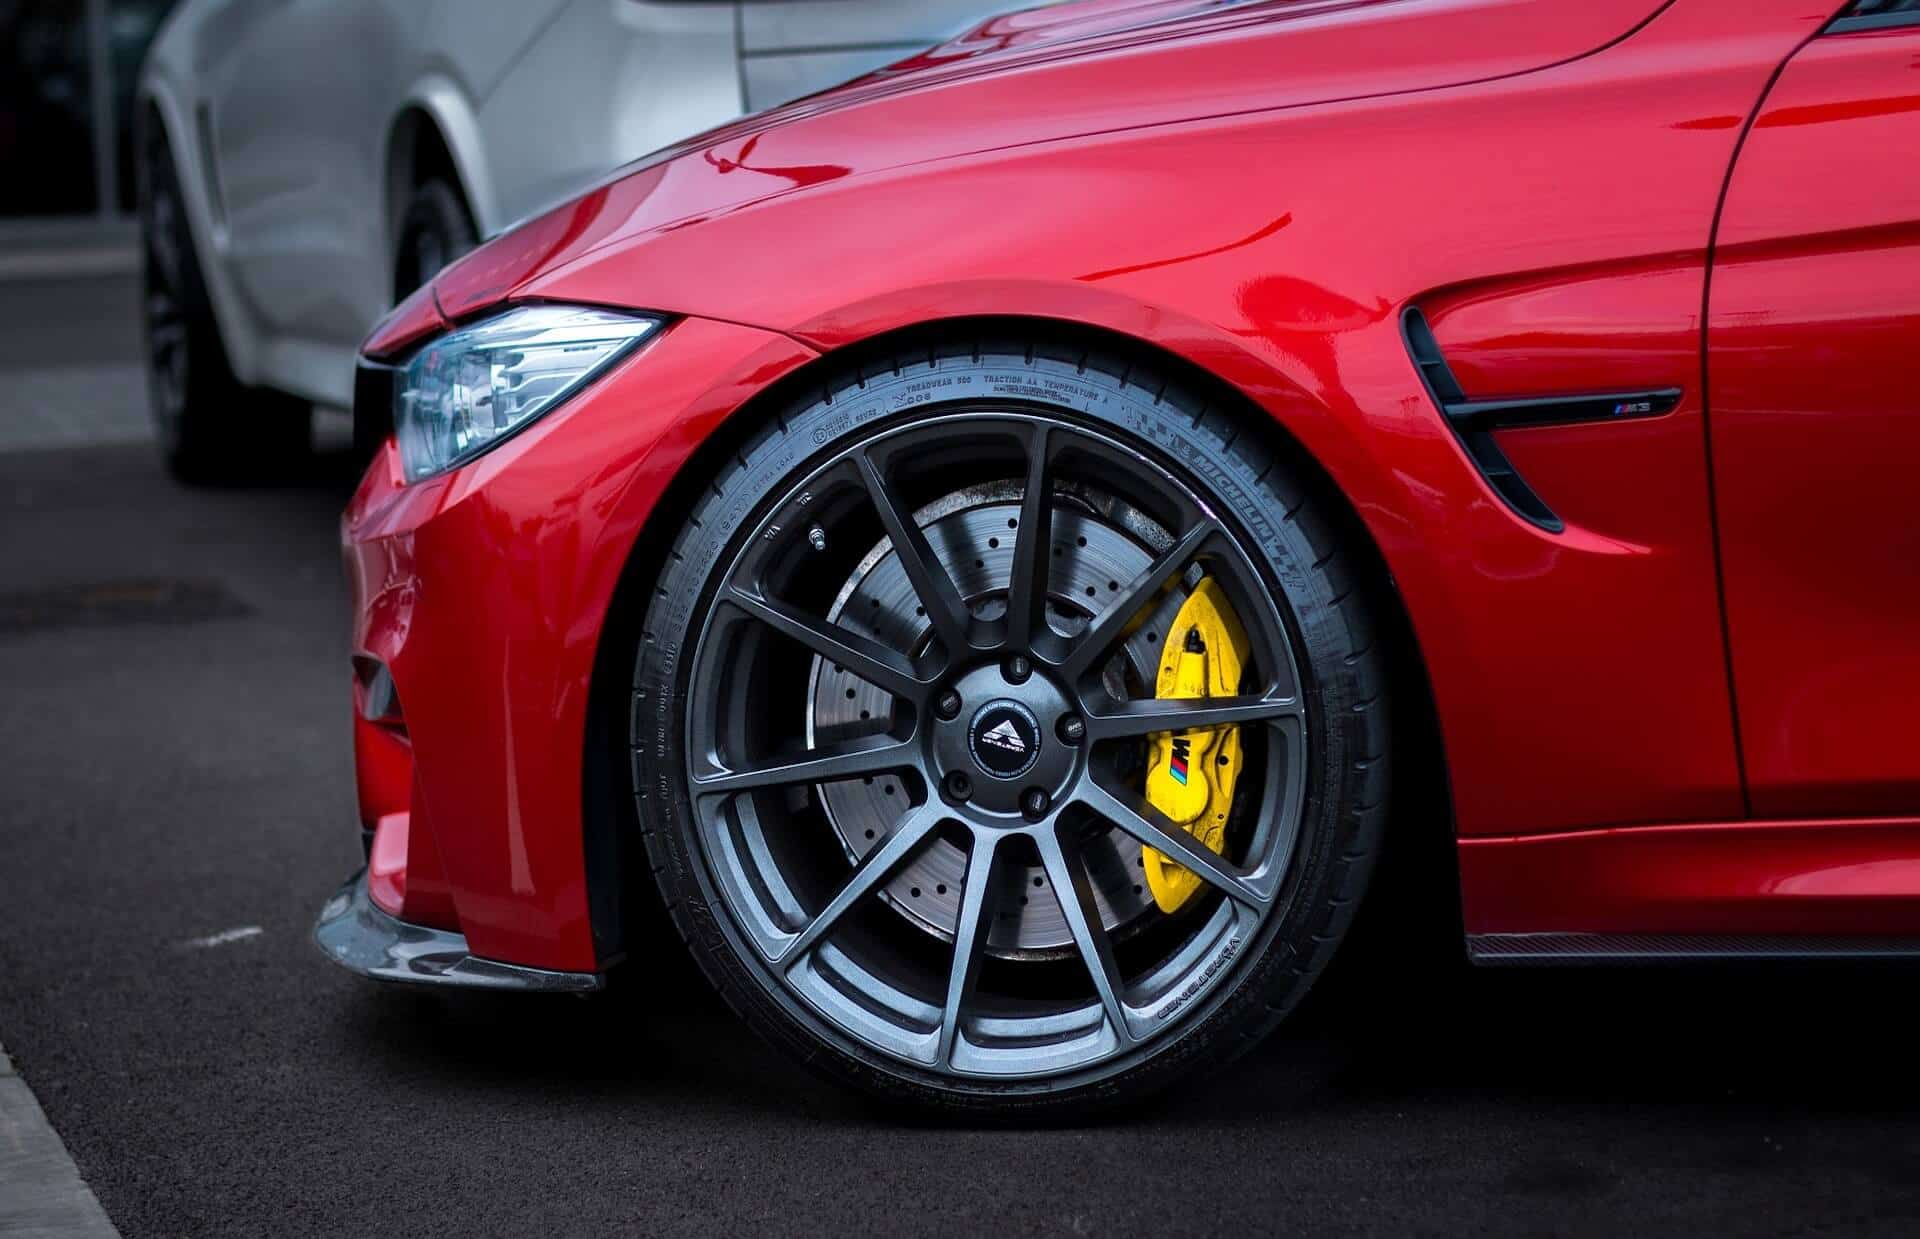 Brakes and tyres